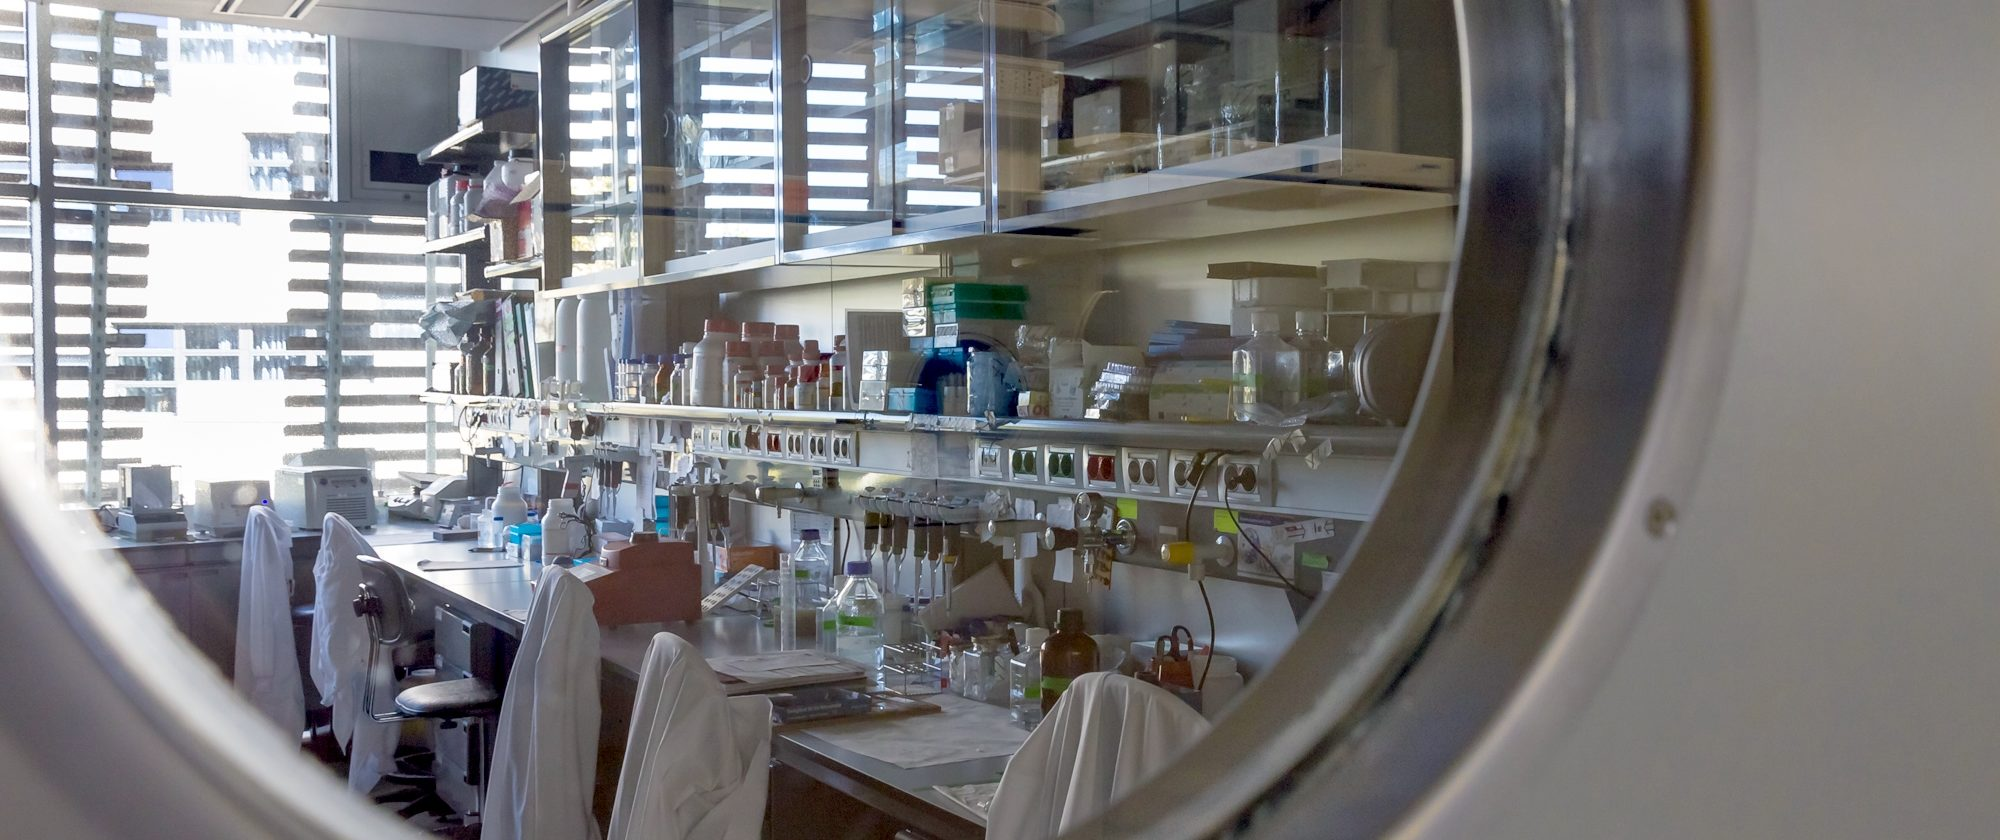 A glimpse of the laboratories. Pepe Aguado Ruiz (visitor of the PRBB Openday 2013)